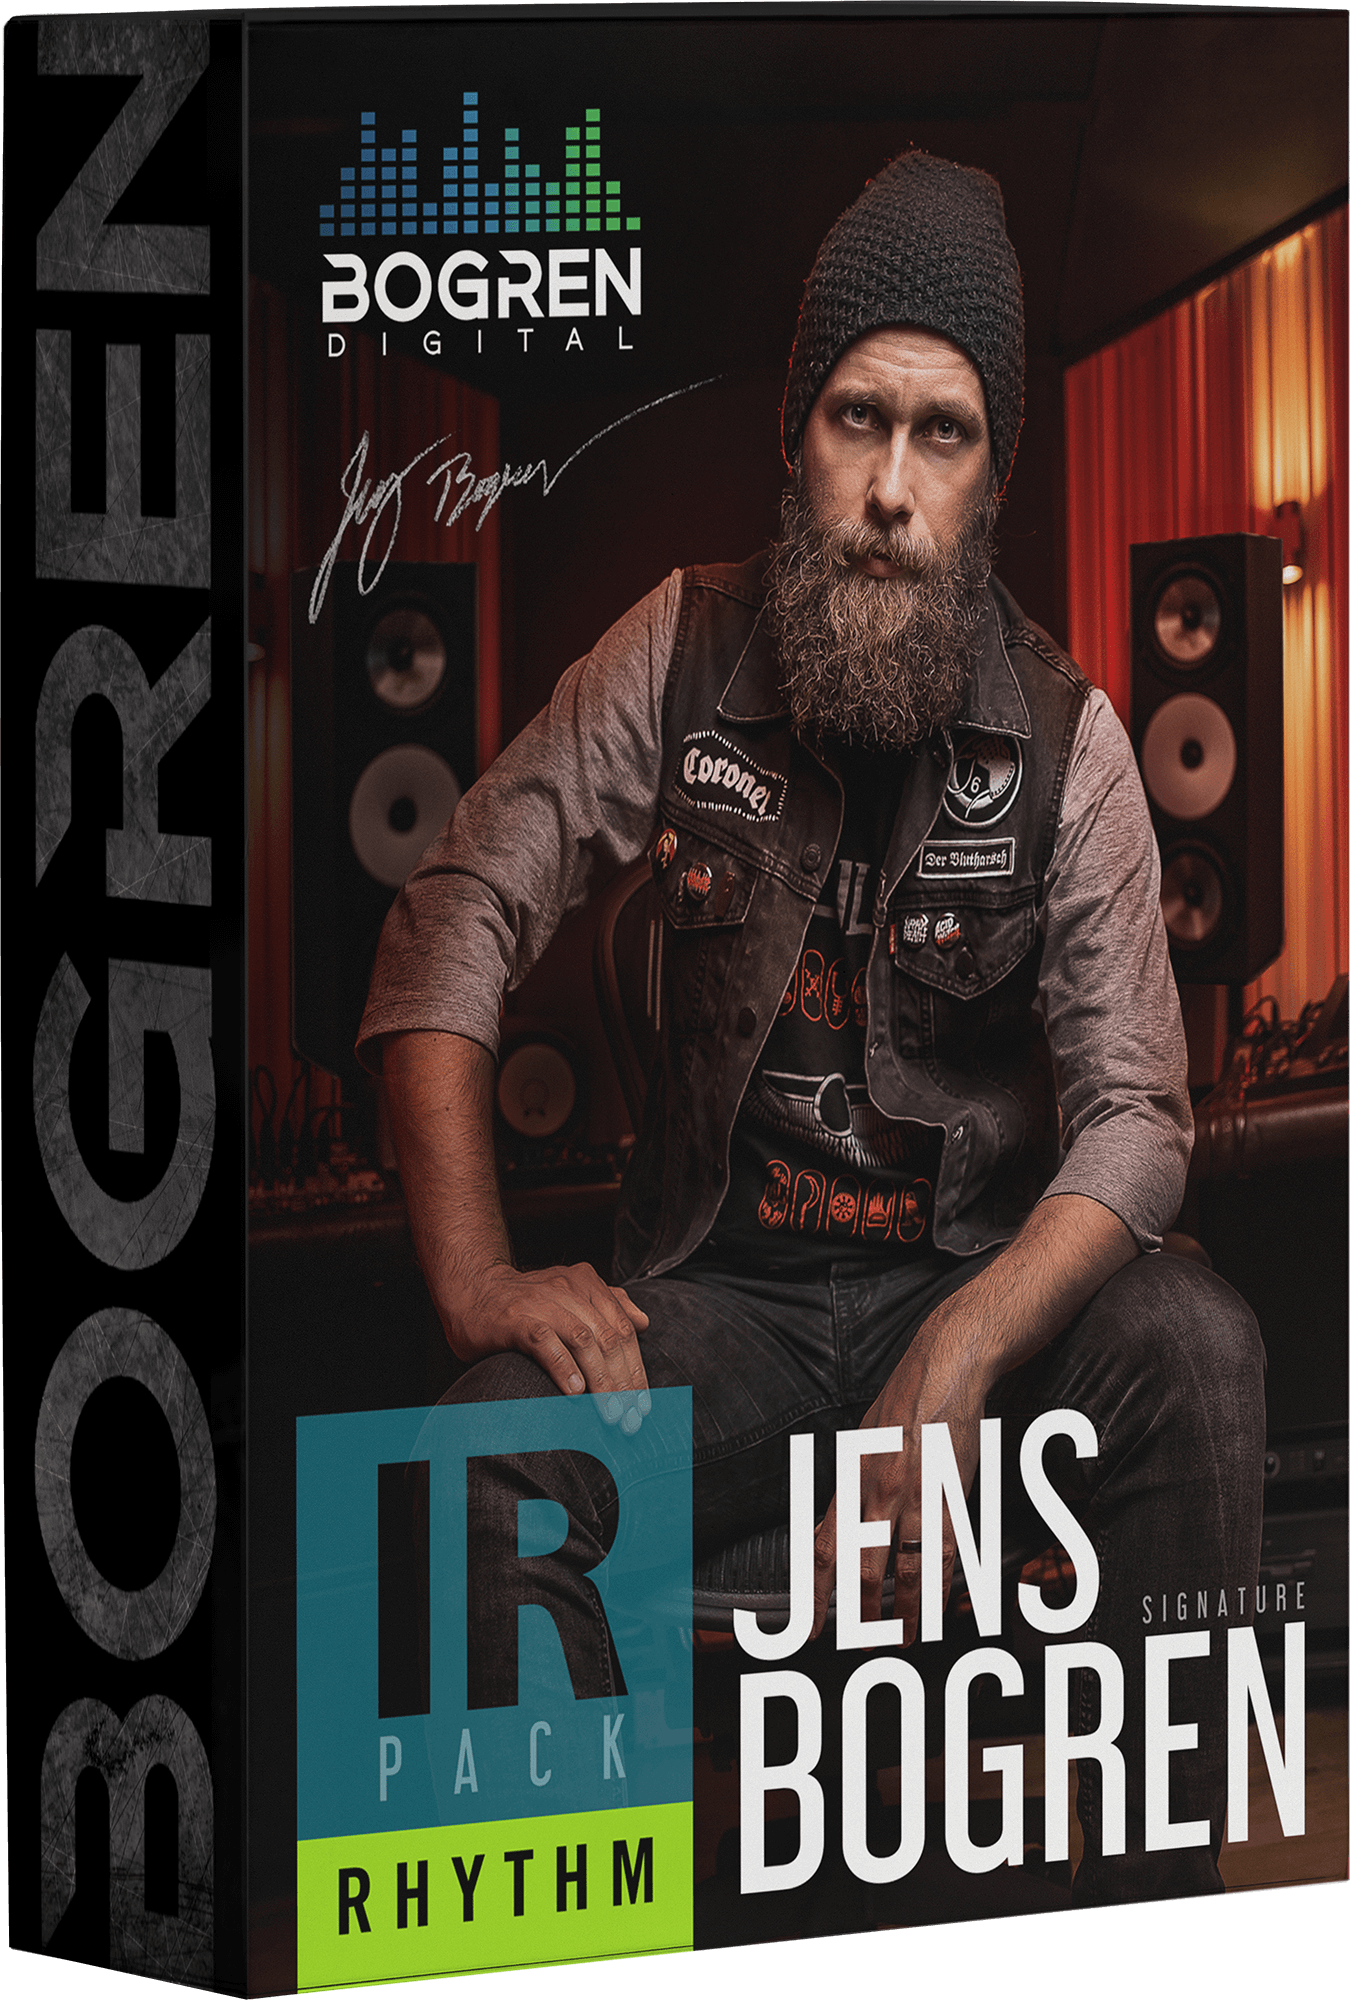 Bogren Digital Jens Bogren Signature IR Pack: Rhythm